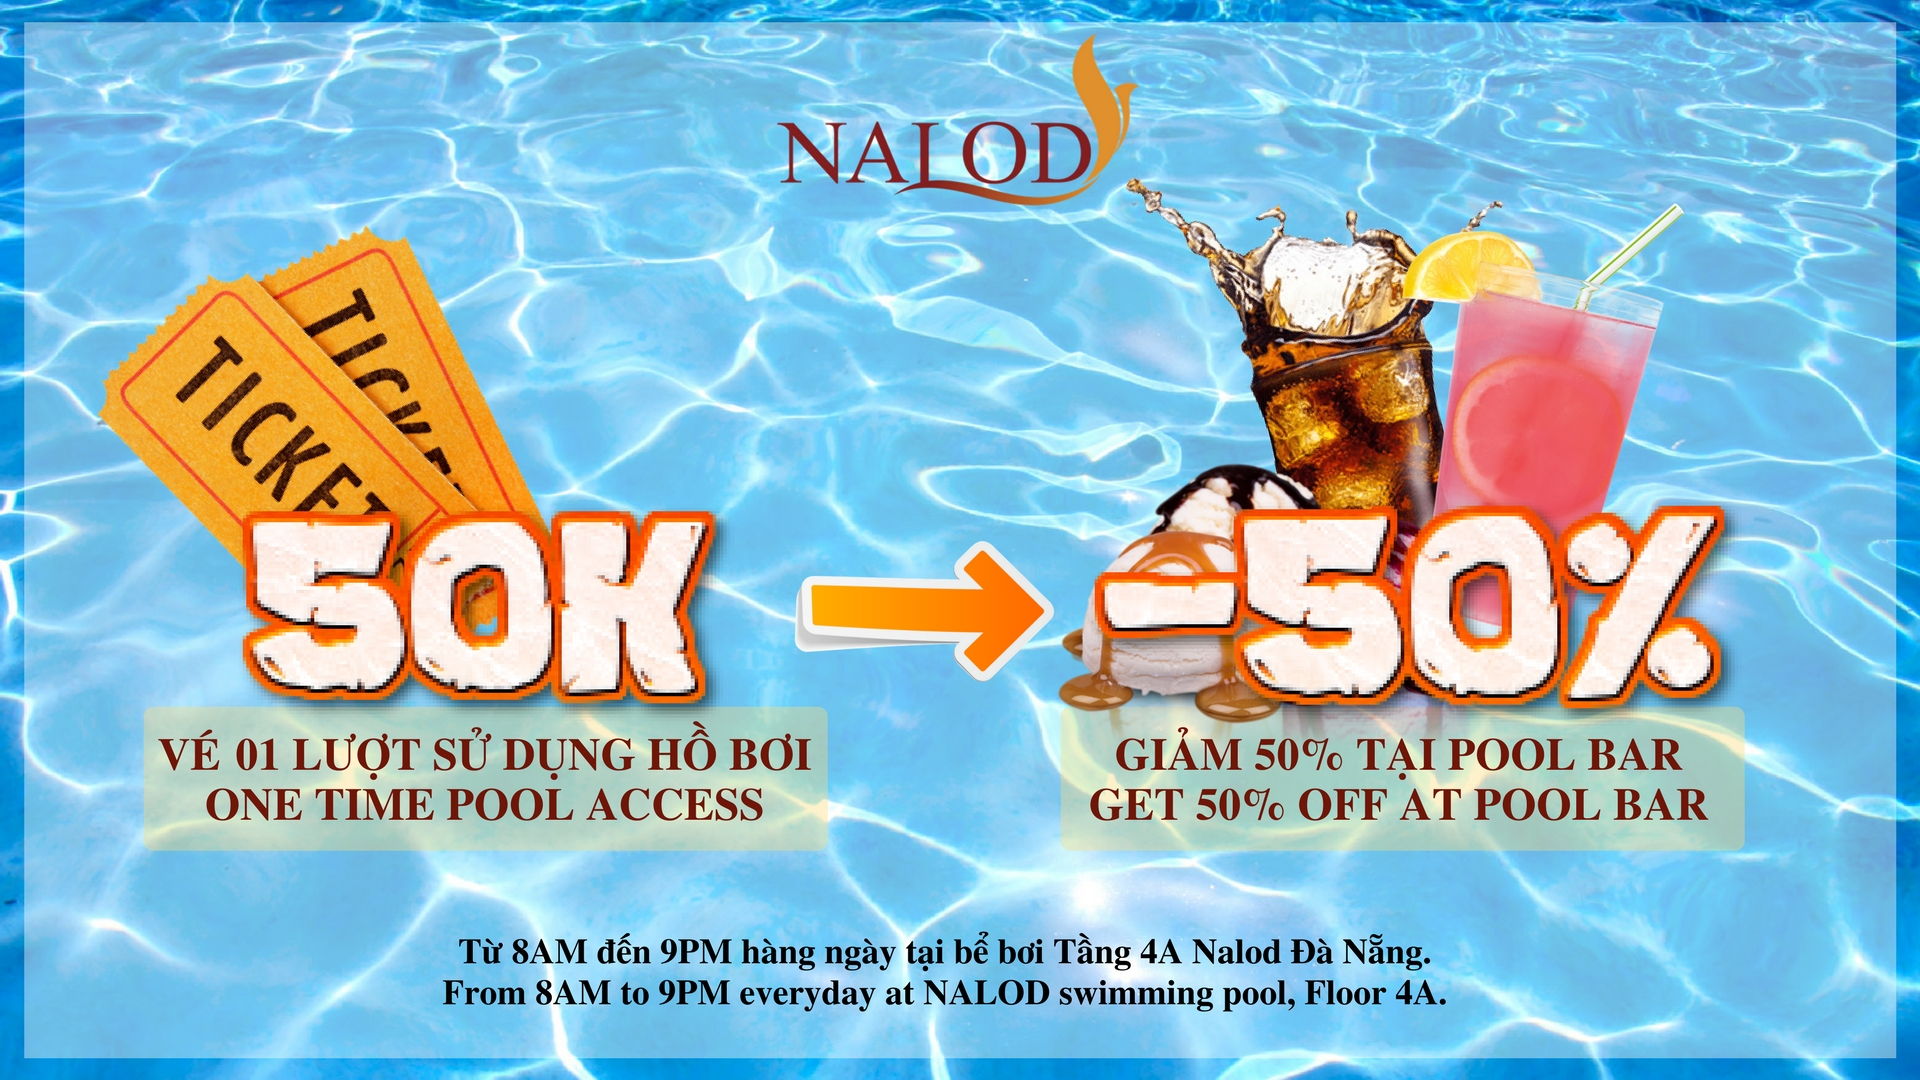 POOL TICKET ONLY 50K, GET 50% DISCOUNT AT POOL BAR